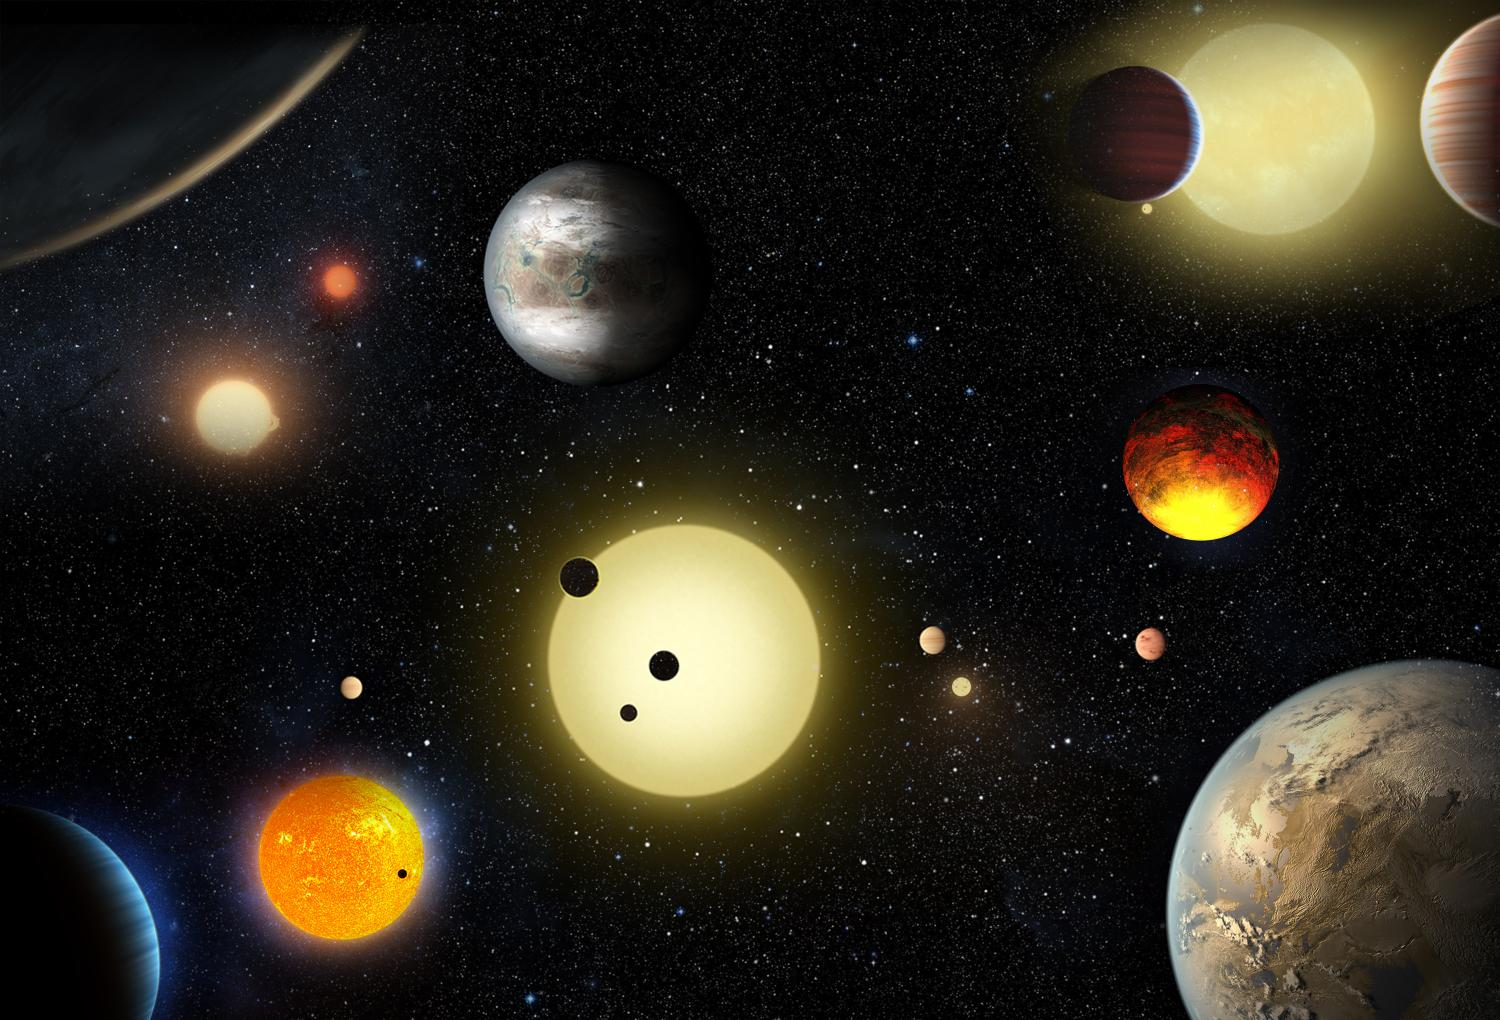 kepler mission One goal of the kepler mission is to estimate the number of planets that exist in multiple-star systems (courtesy nasa/wendy stenzel.